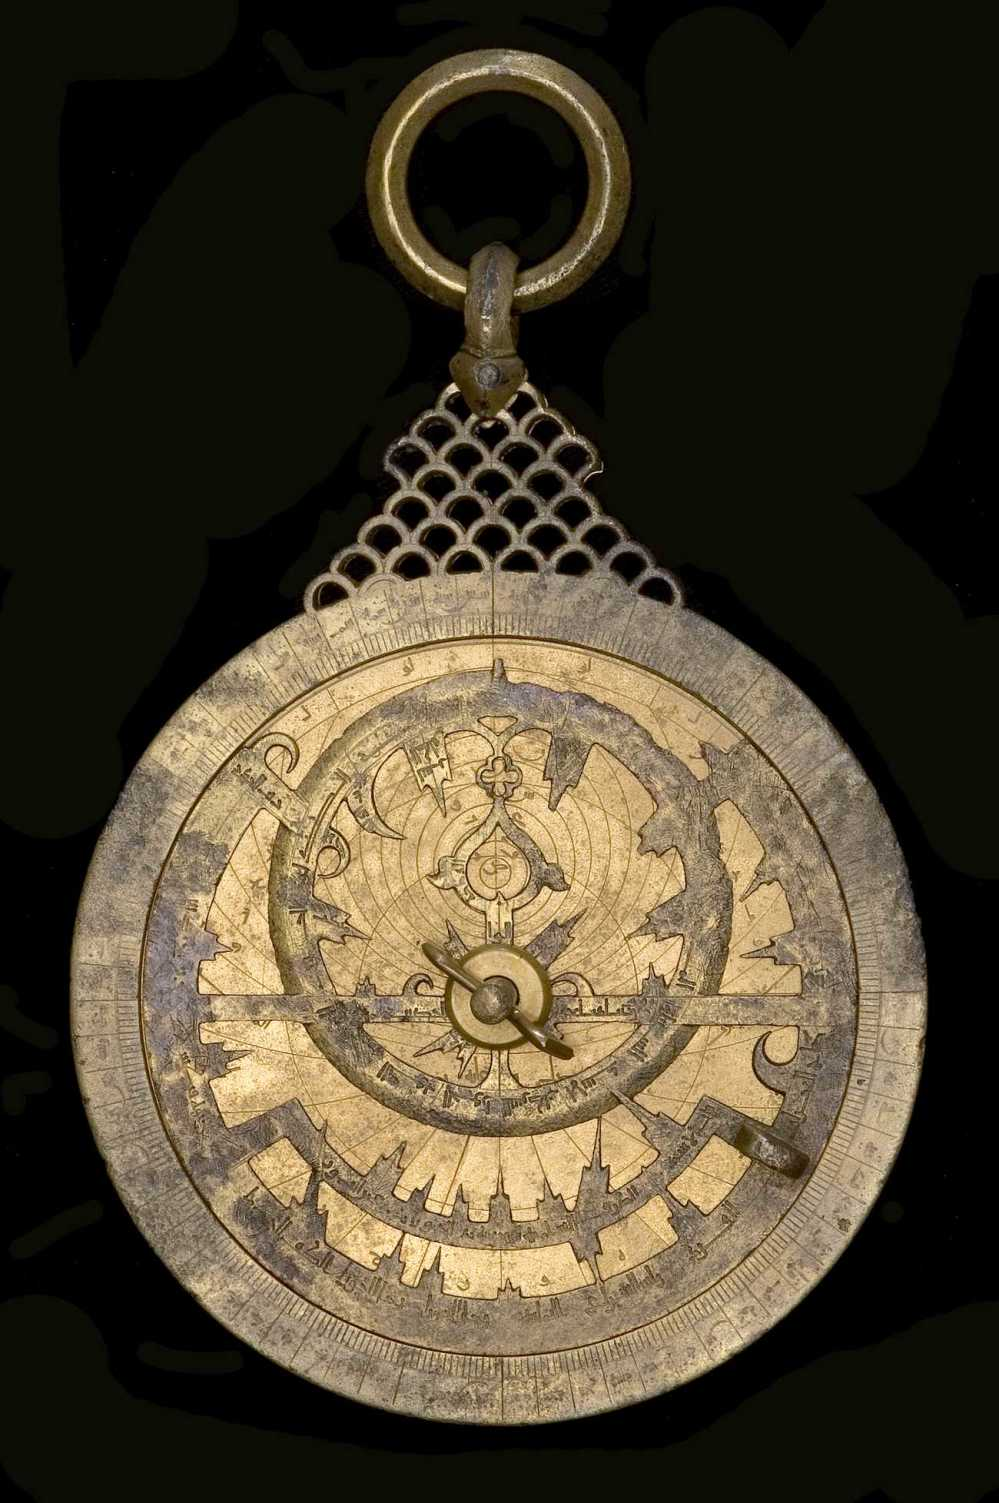 preview image for Astrolabe, by Ahamad and Muhammad the Sons of Ibrahim, Isfahan, 984/5 or 1003/4